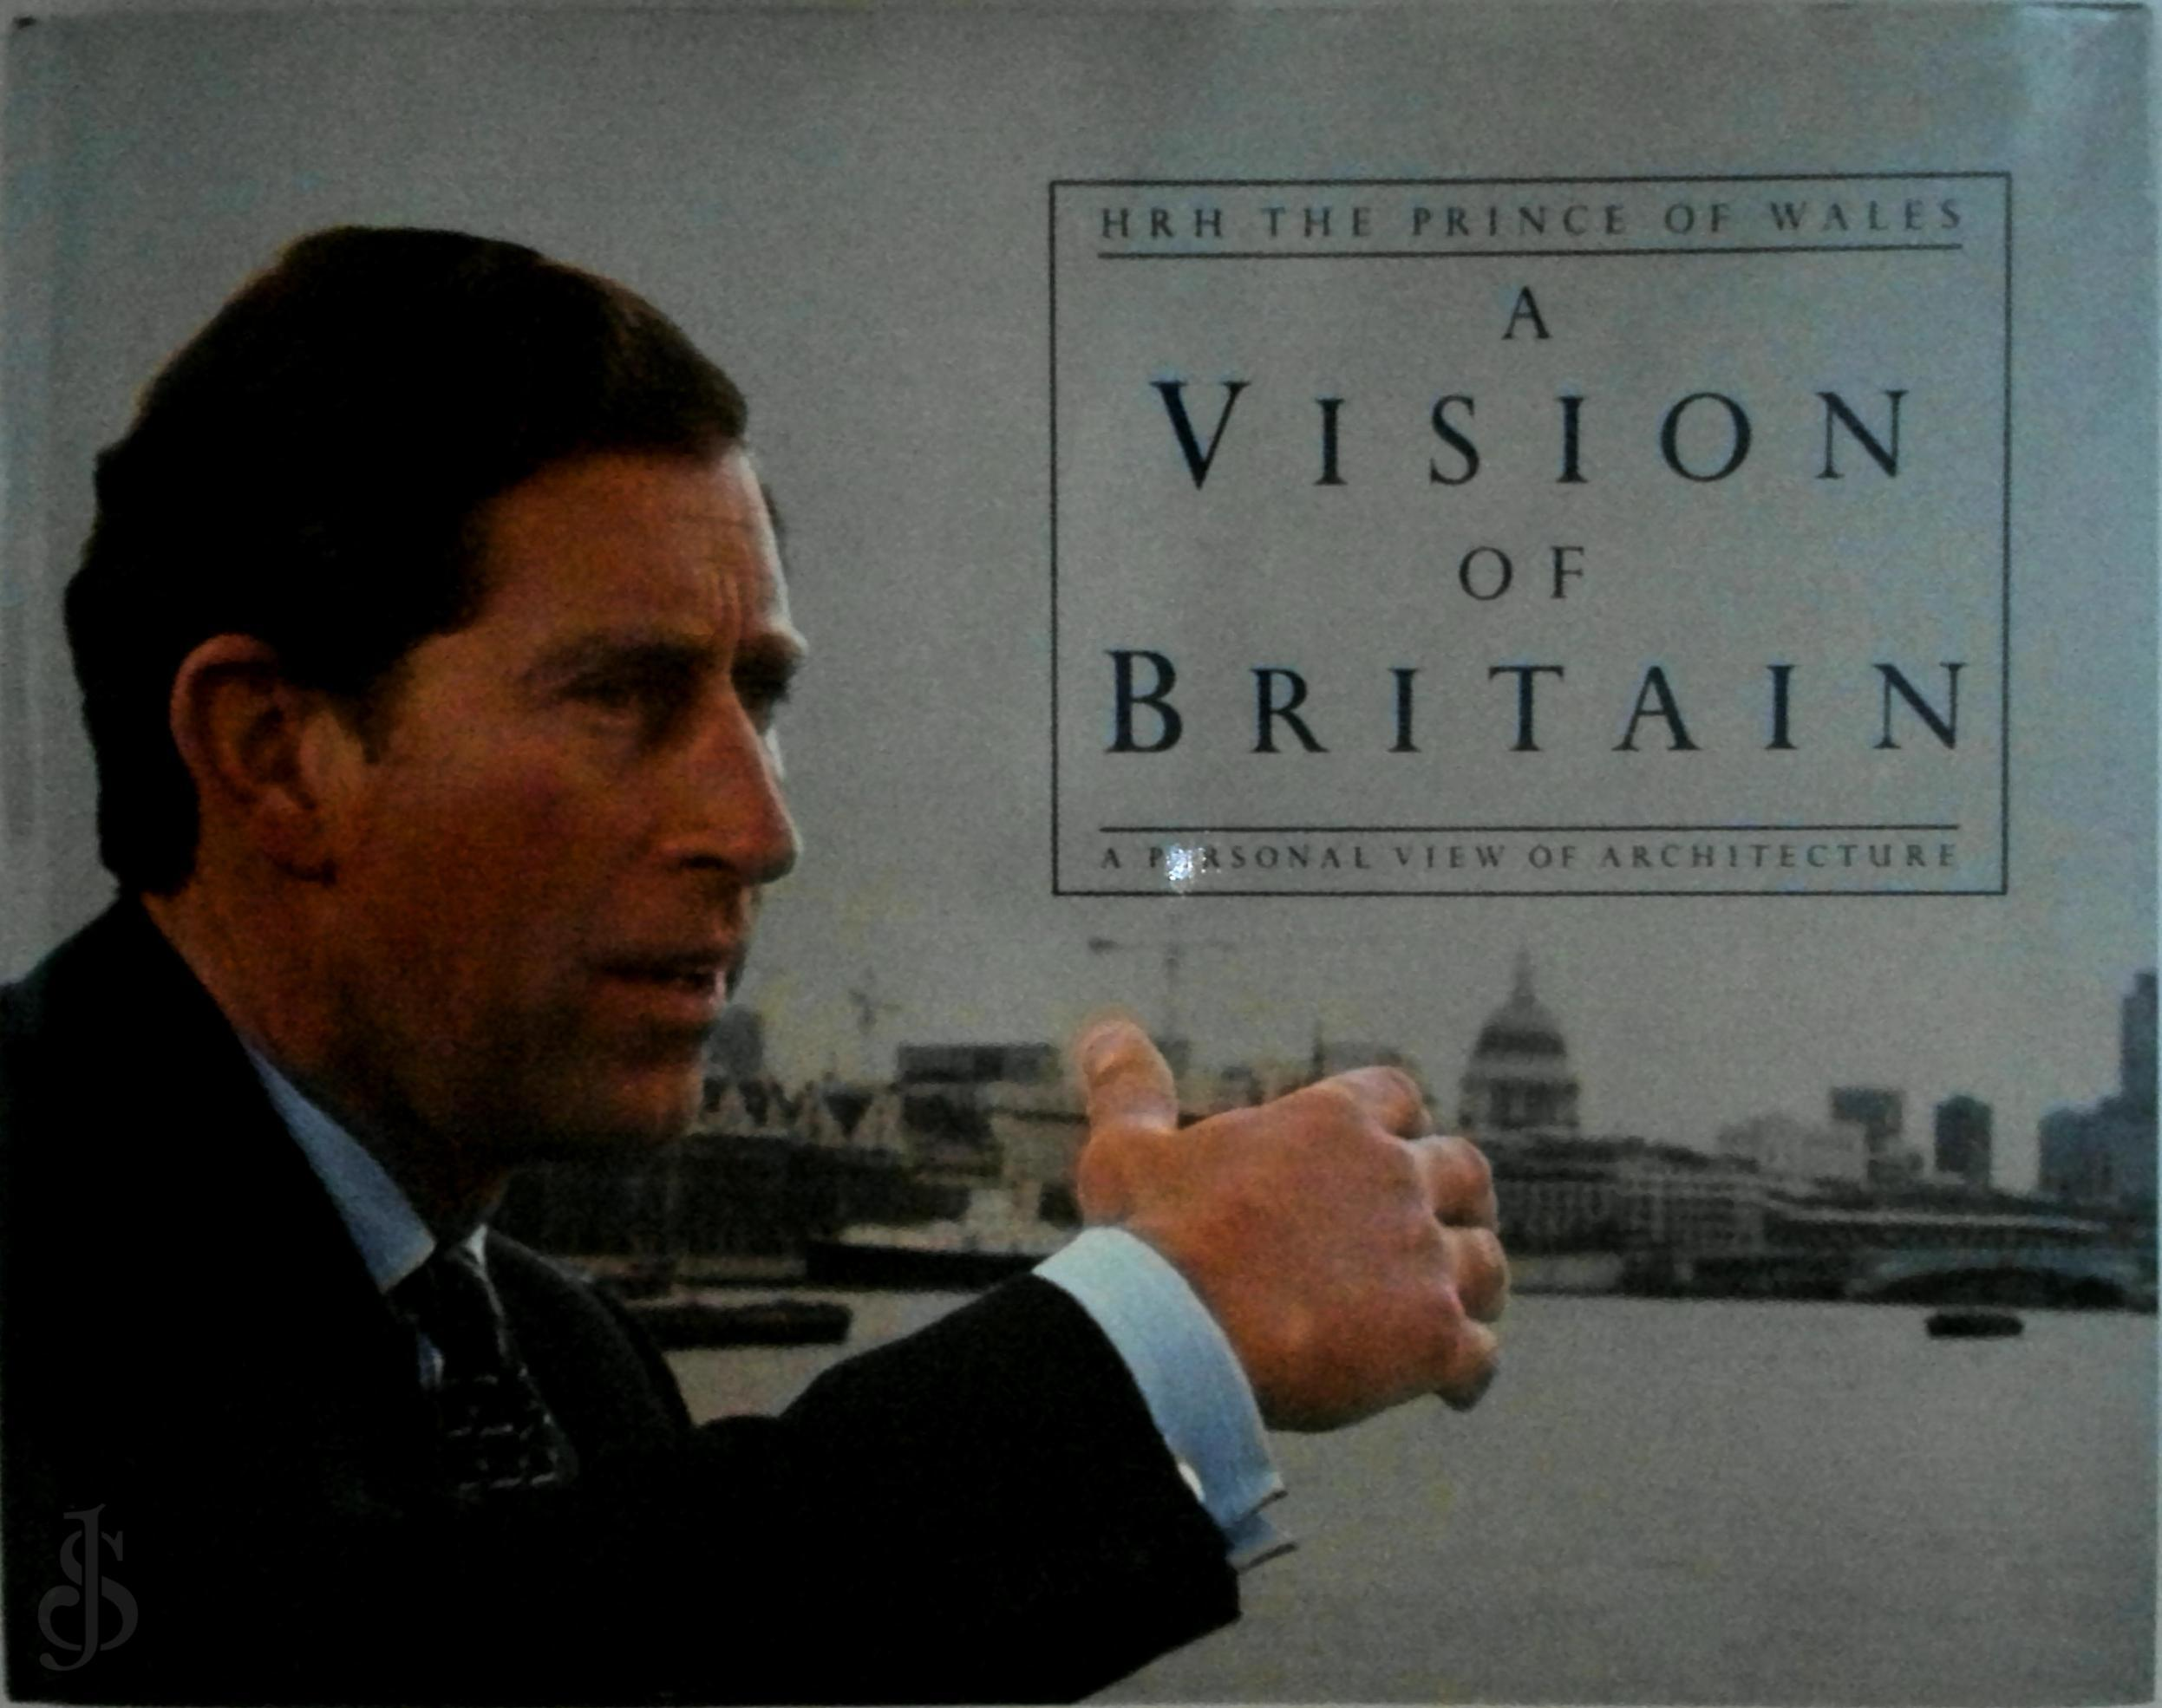 A vision of Britain a perso...